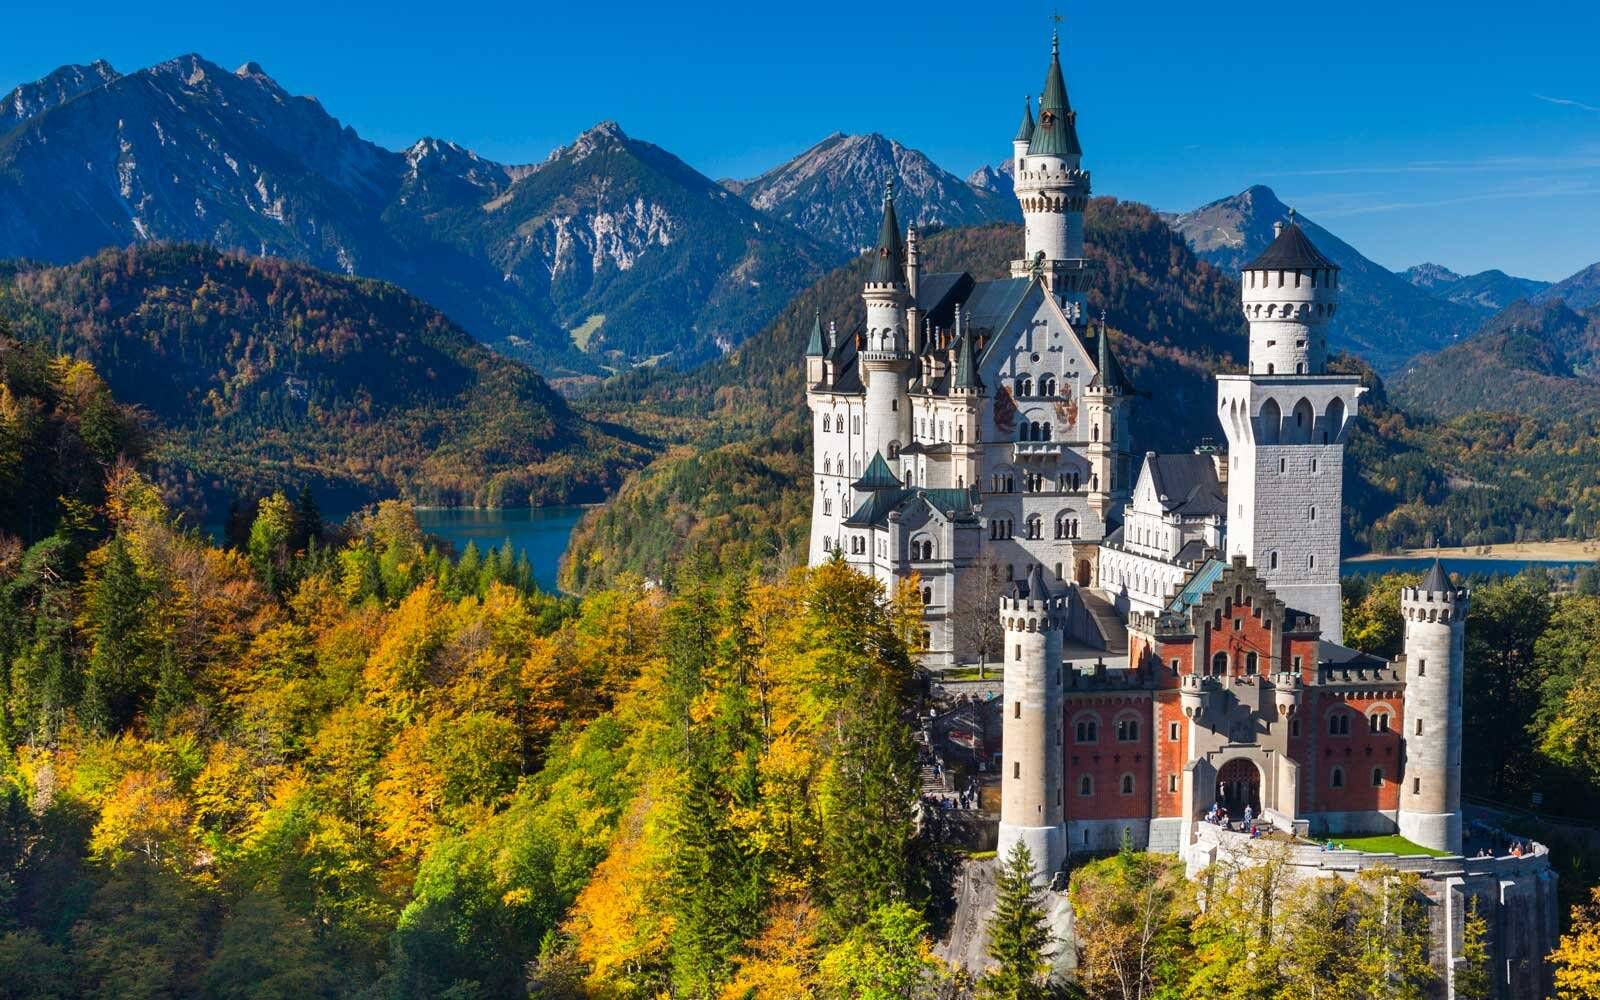 Neuschwanstein Castle in the Bavarian Alps